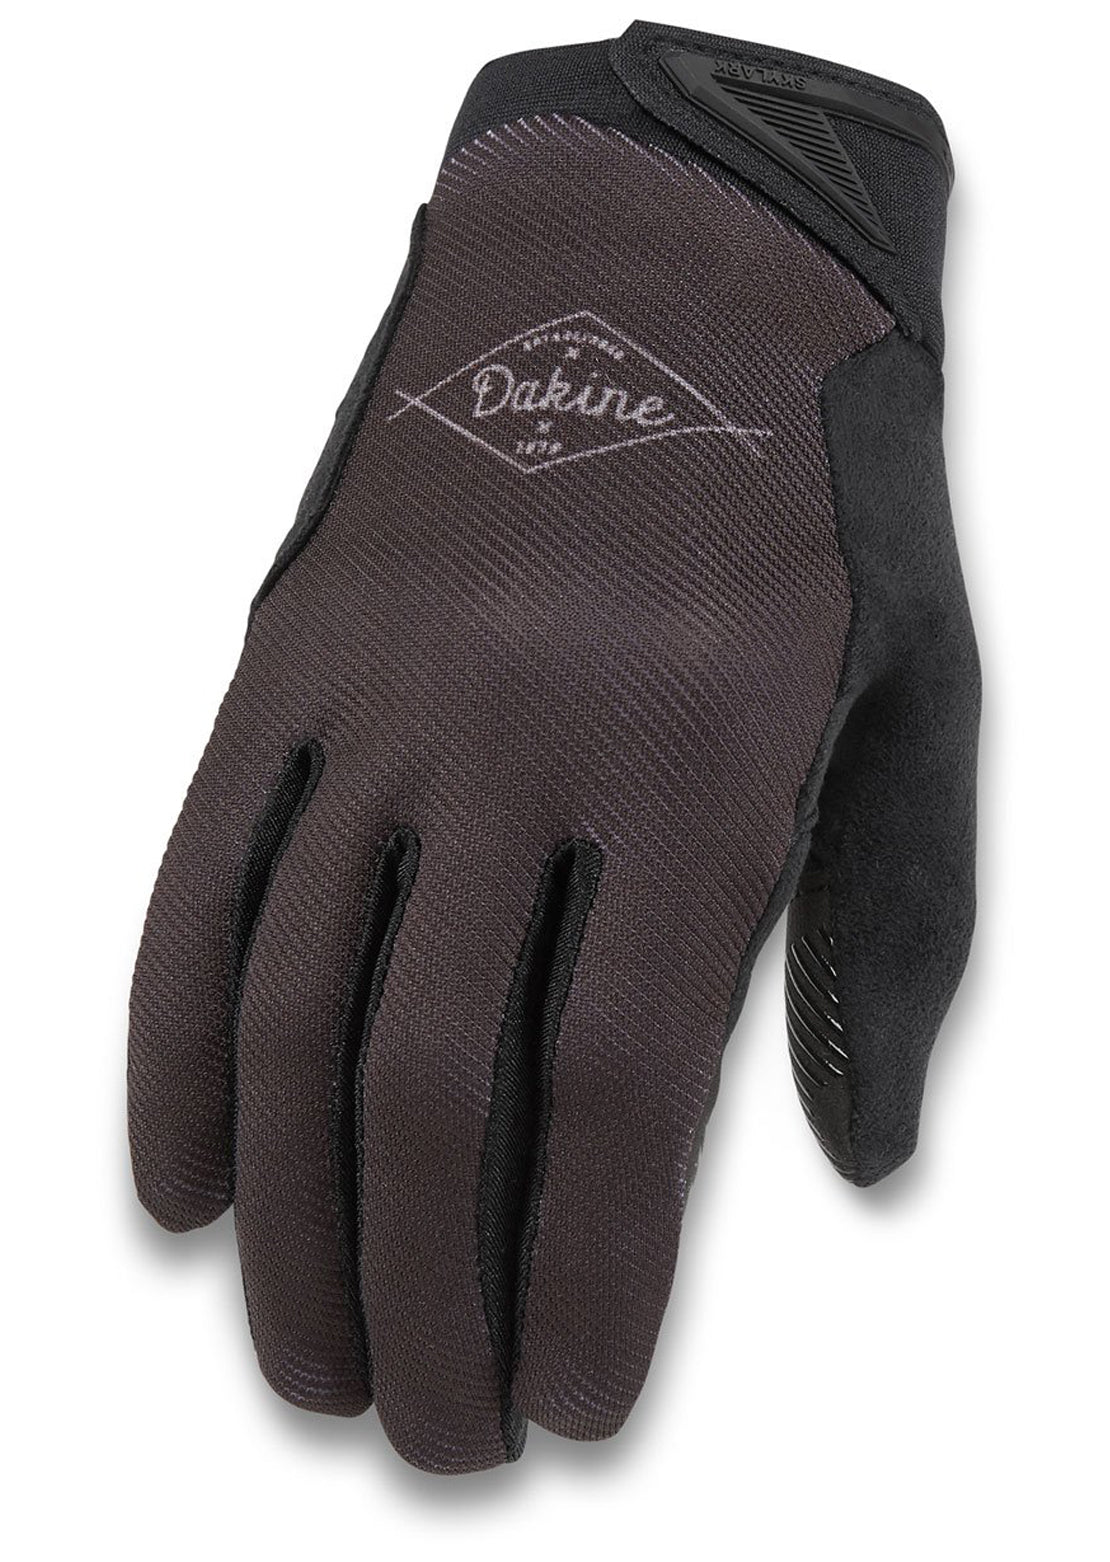 Dakine Women's Covert Mountain Bike Gloves Amethyst